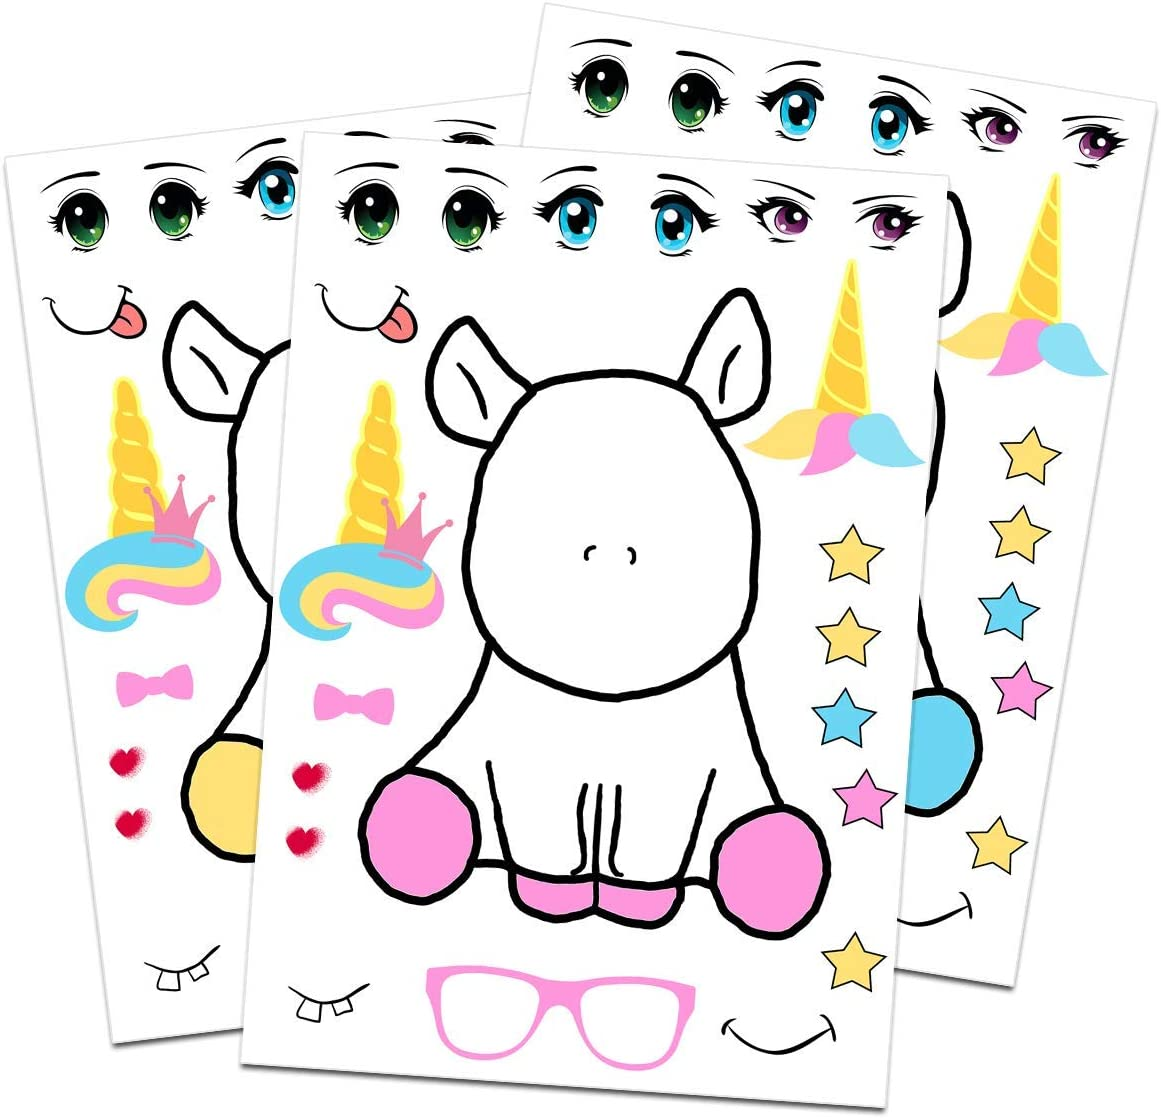 MISS FANTASY Make a Unicorn Stickers Unicorn Party Supplies and Favors for Girls Birthday Party Games and Activities for Kids Set of 24 Multi